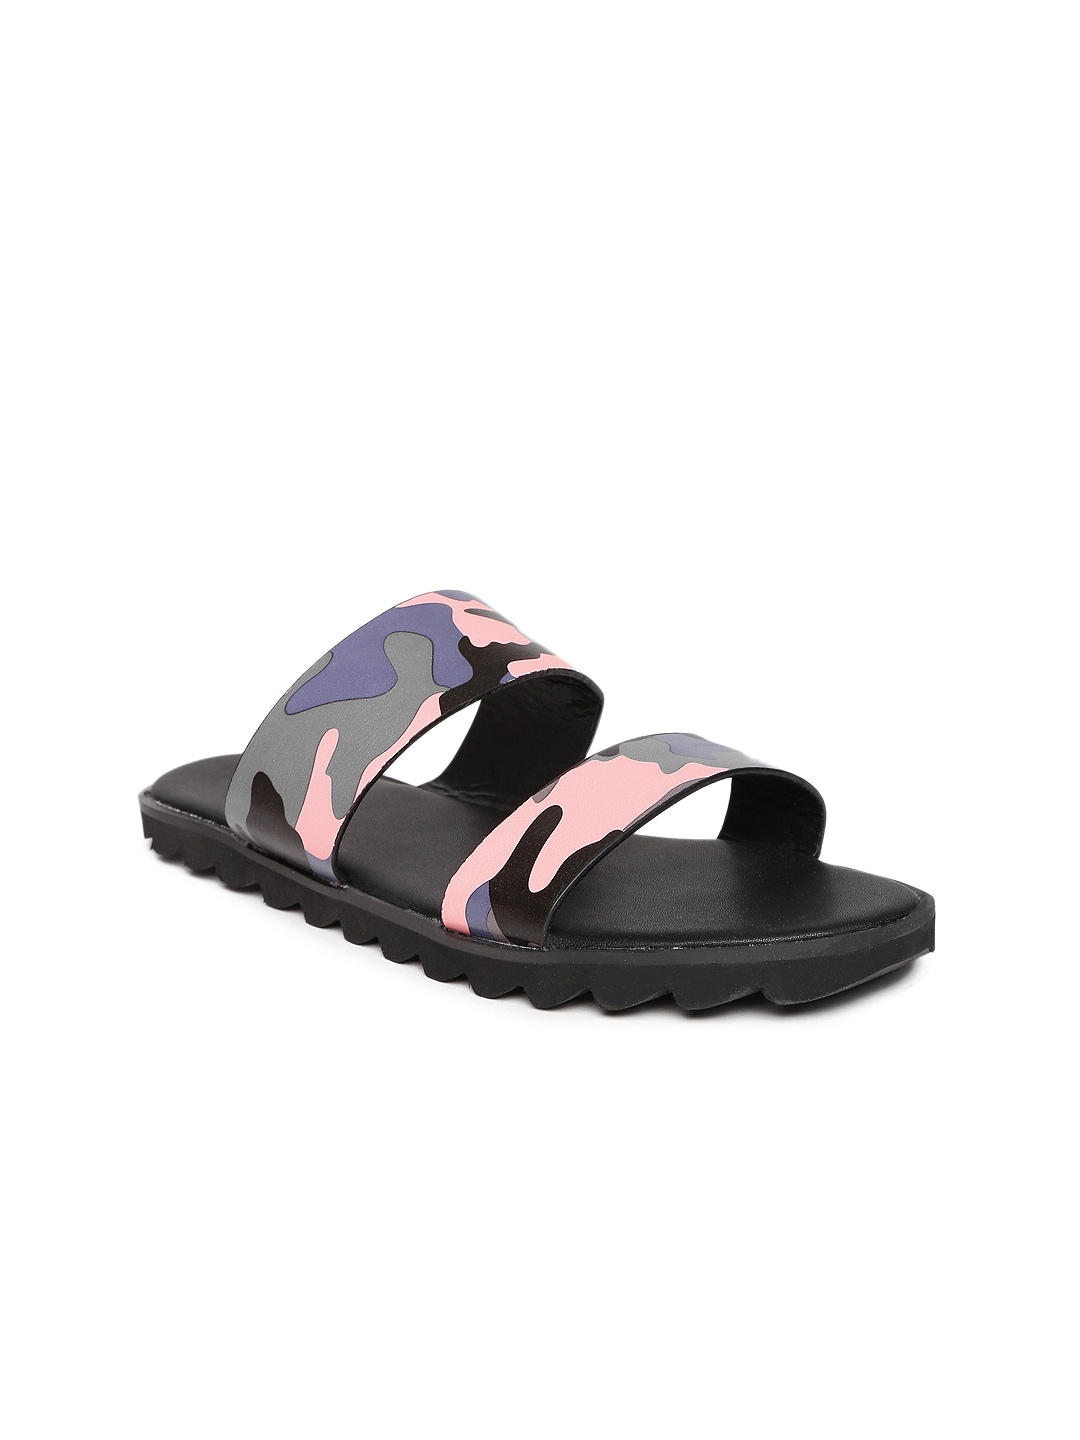 Marie Claire Women Pink & Grey Camouflage Print Flats image